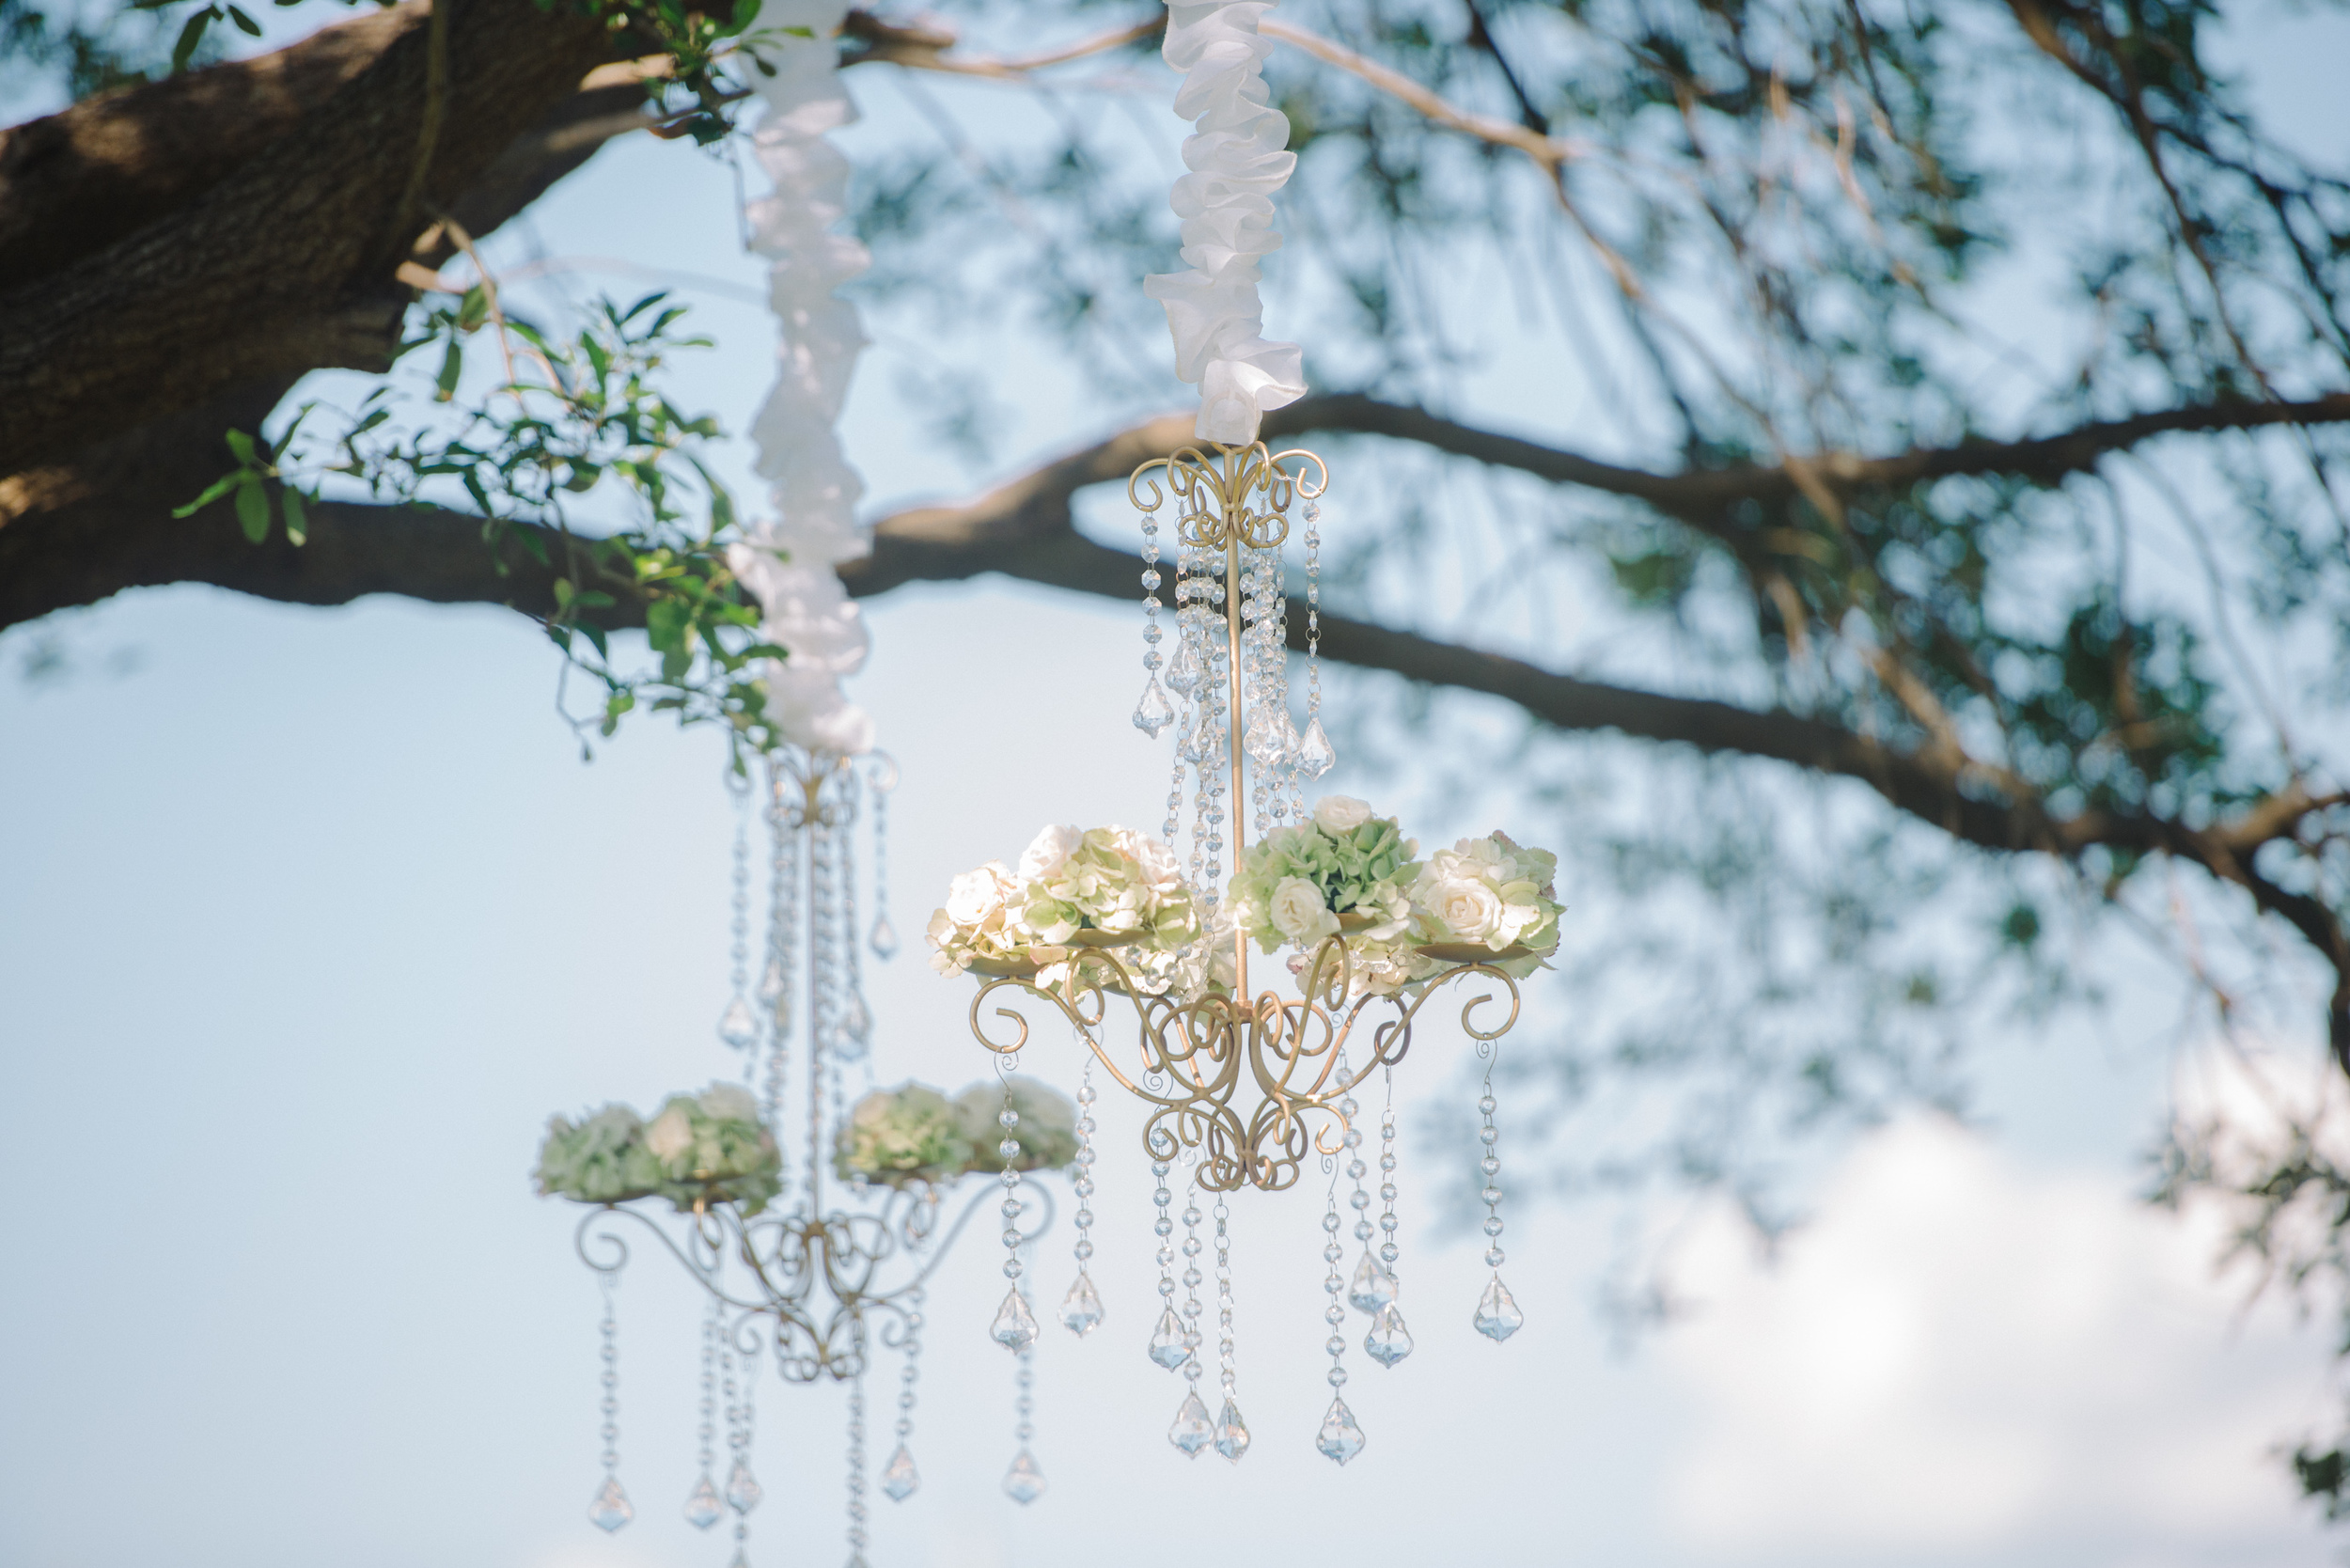 Floral Chandeliers hung in the tree.